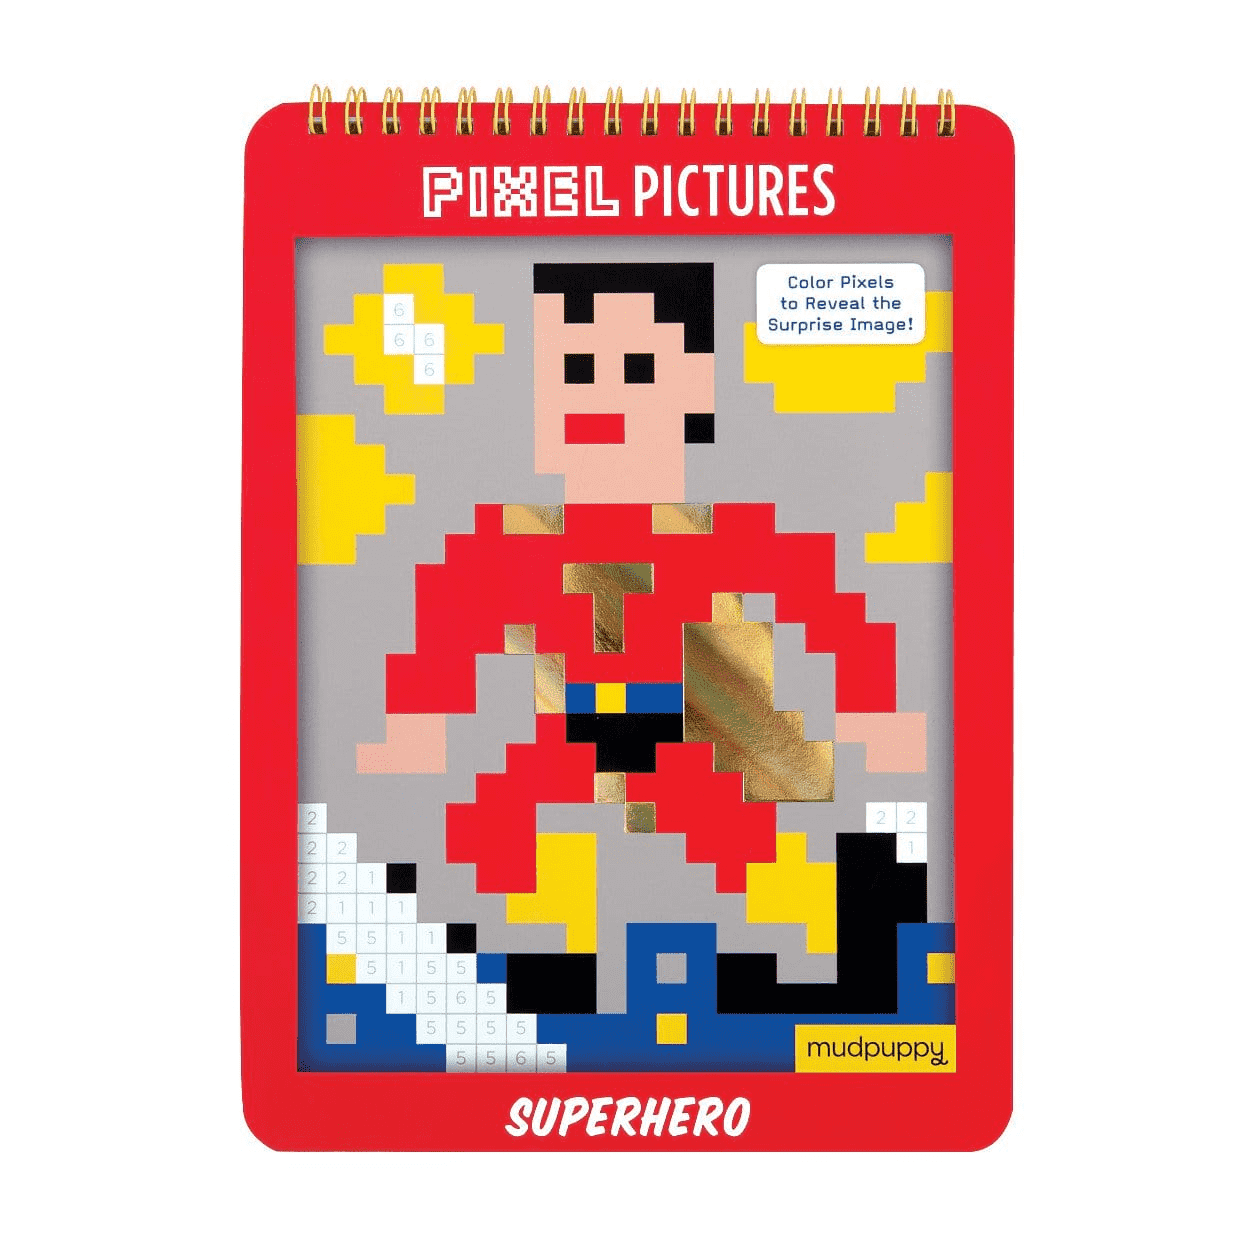 Superhero Pixel Pictures sale Mudpuppy